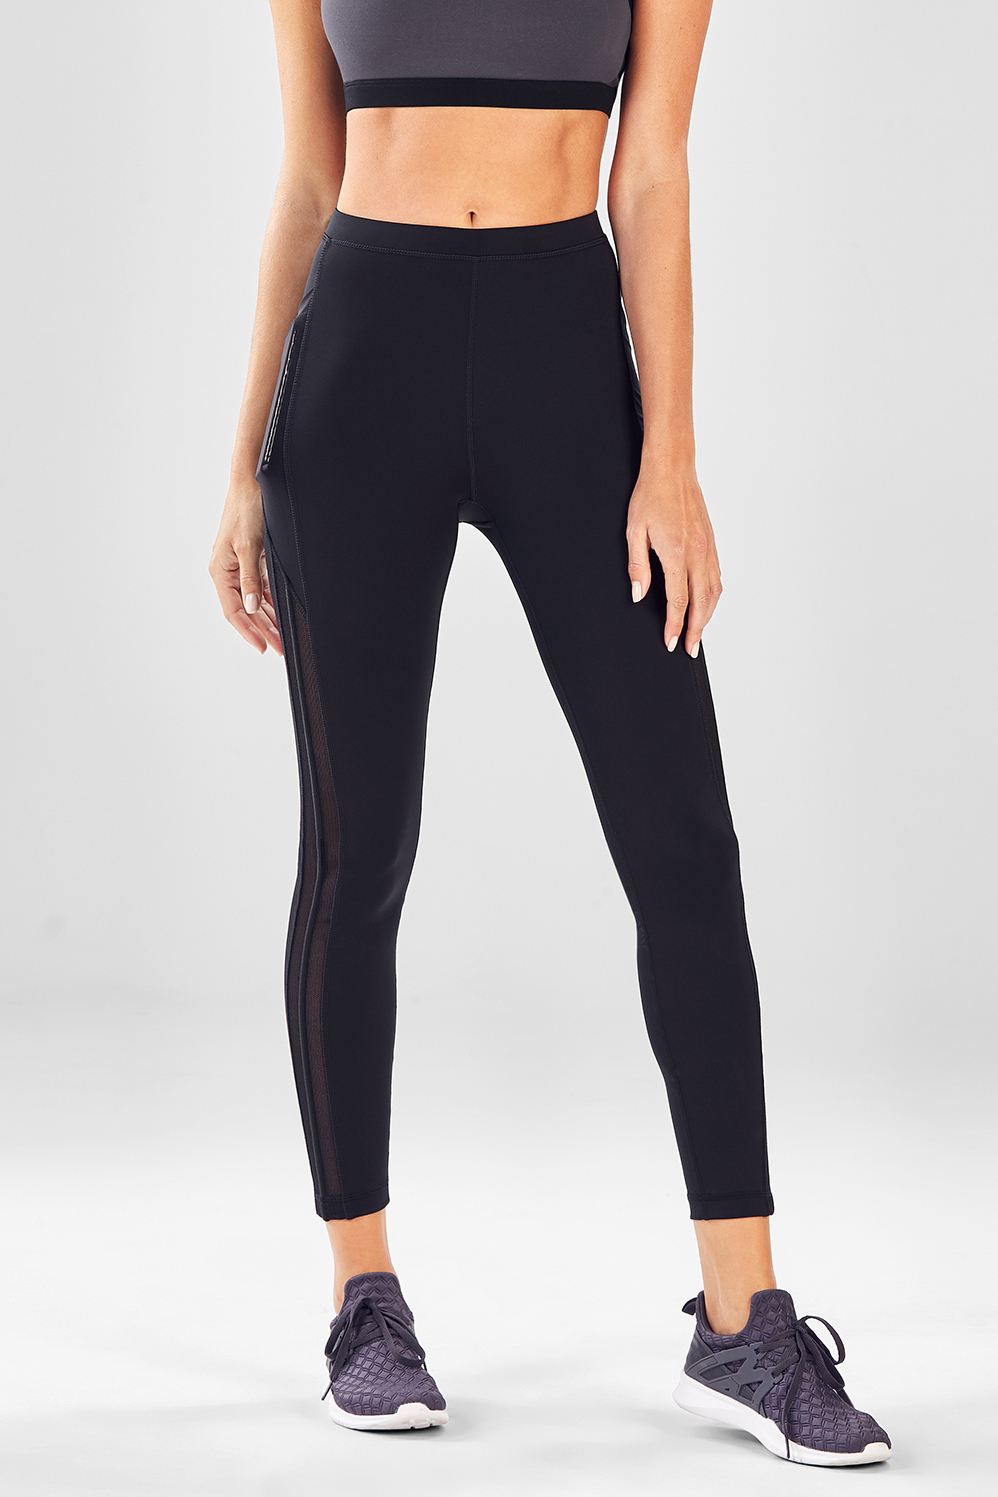 62705920248 High-Waisted Solid Spin Bottoms II - Fabletics